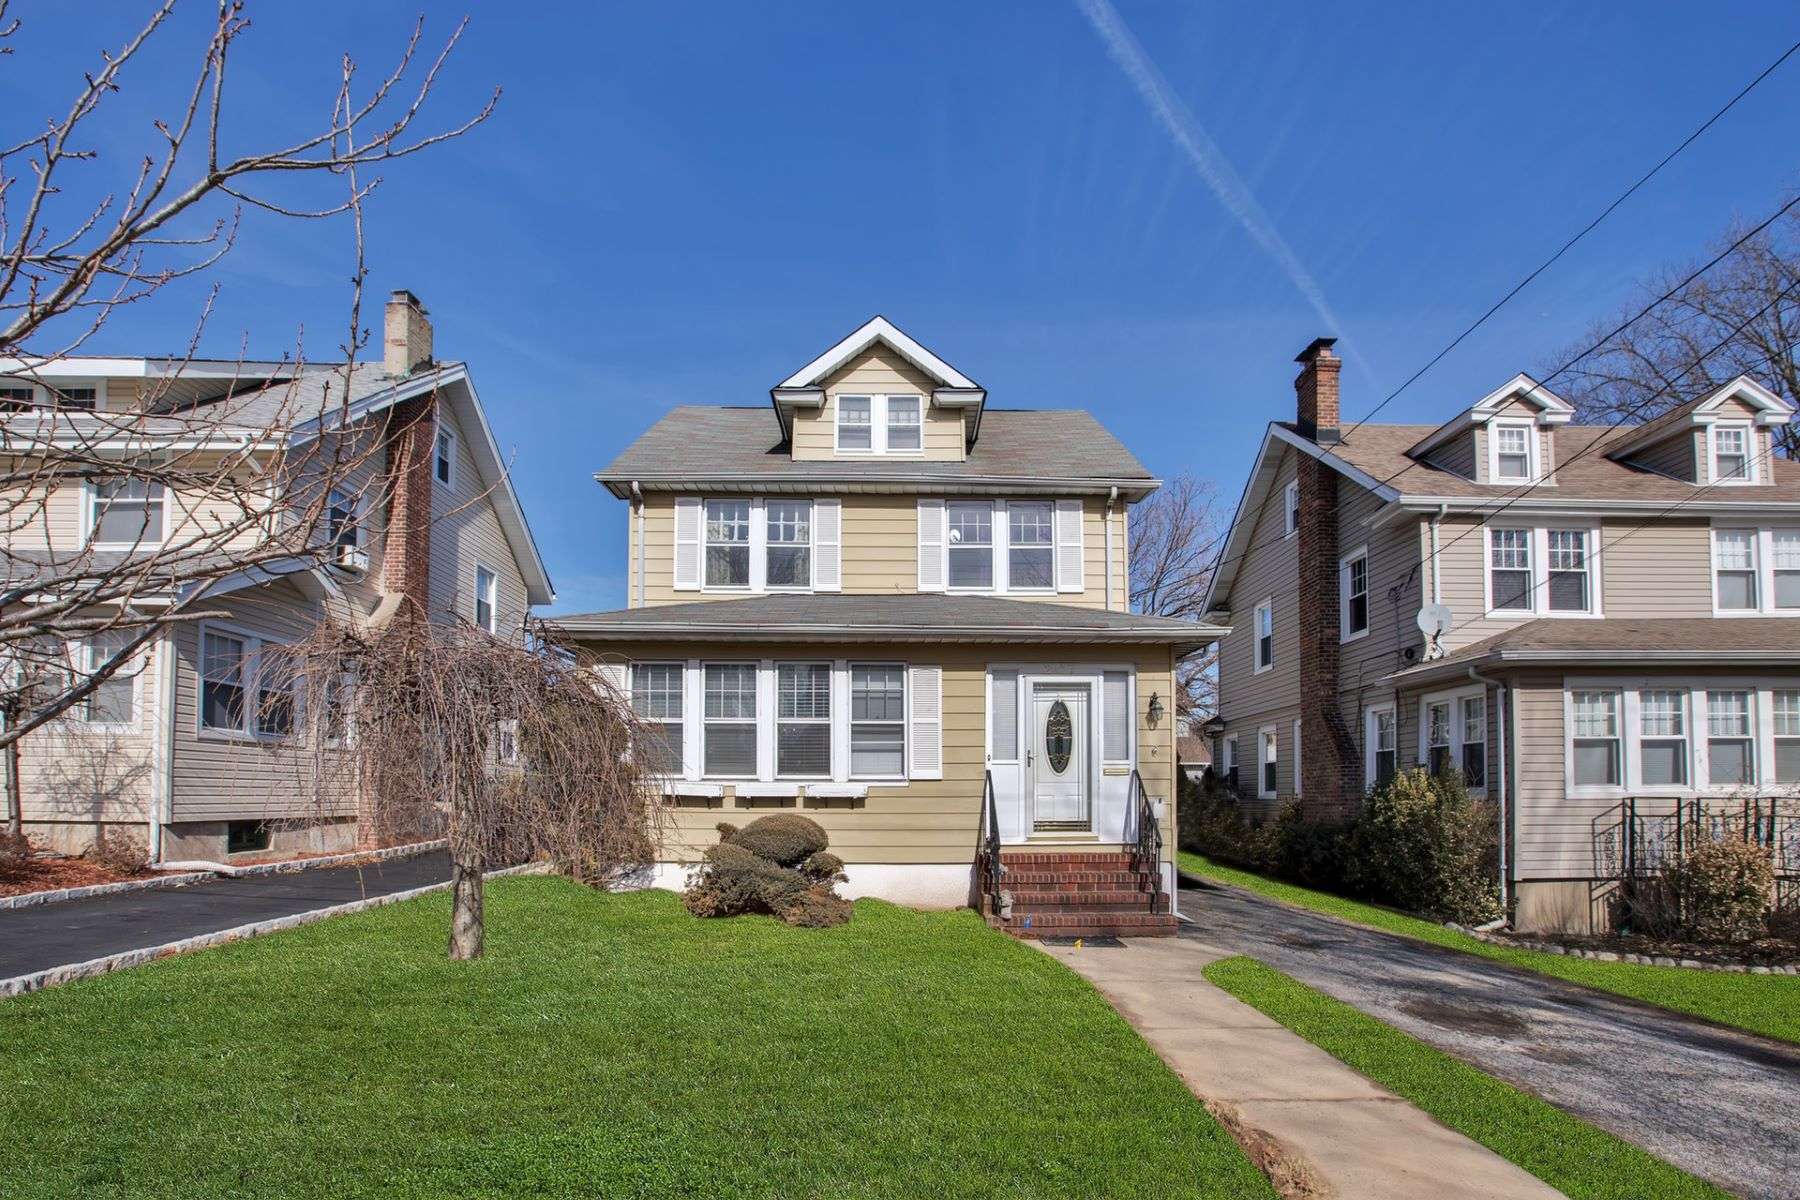 Single Family Home for Sale at Spacious Colonial 207 Maplewood Ave Bogota, New Jersey 07603 United States